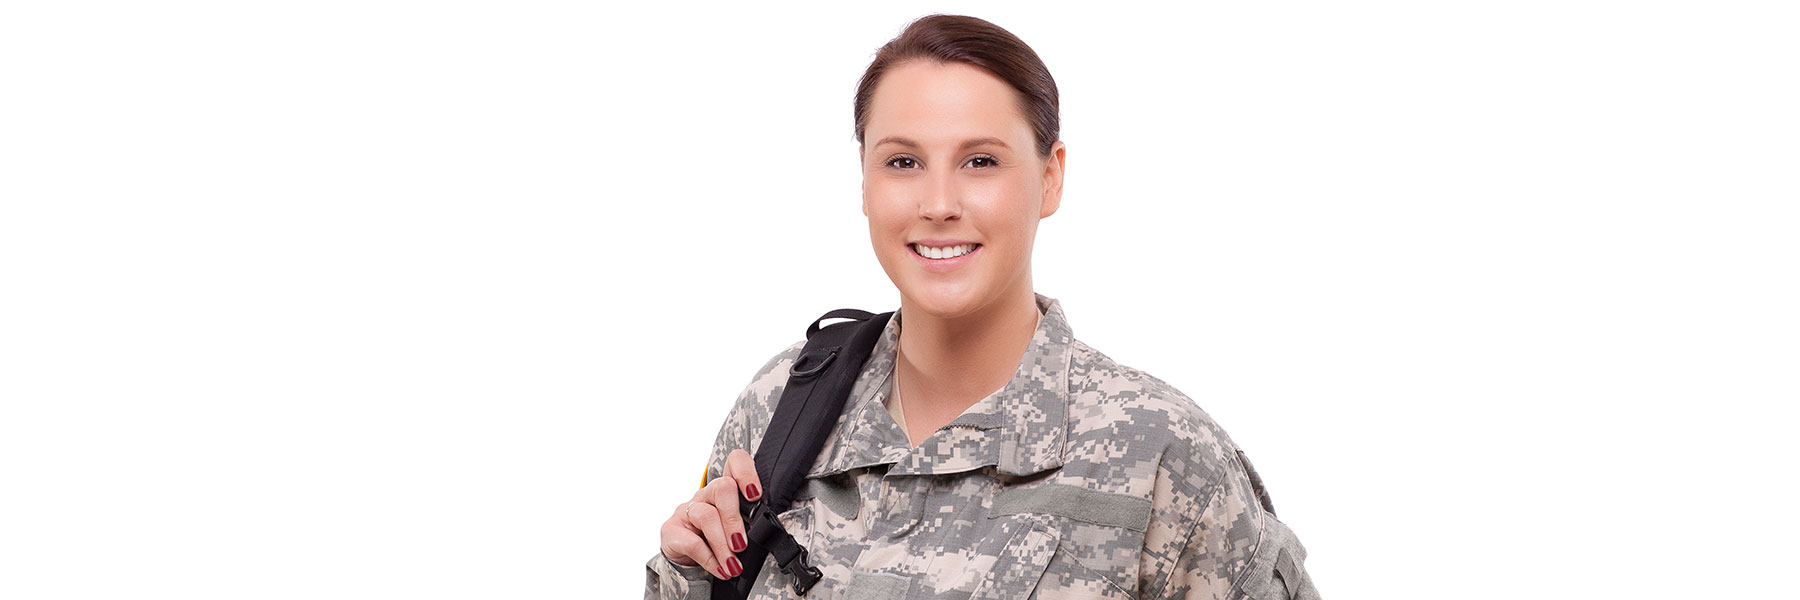 Woman Air Force member